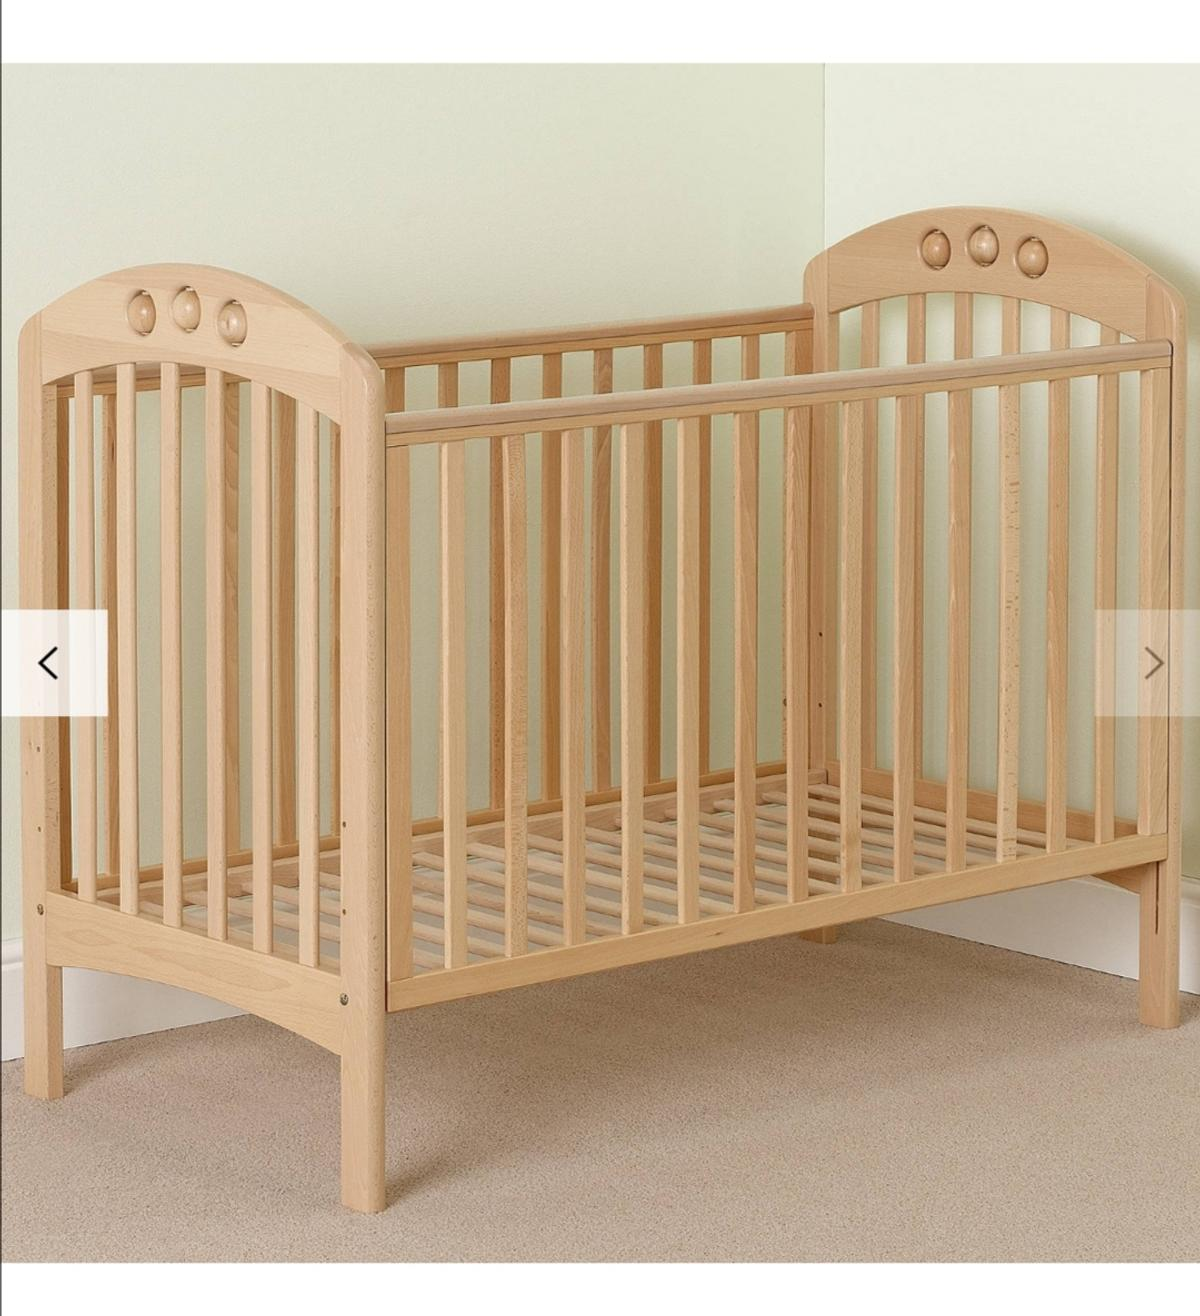 John Lewis baby playbeat cot. New mattress included used only for a month. Easy to assemble. Suitable from birth. Has to go asap as moving abroad.